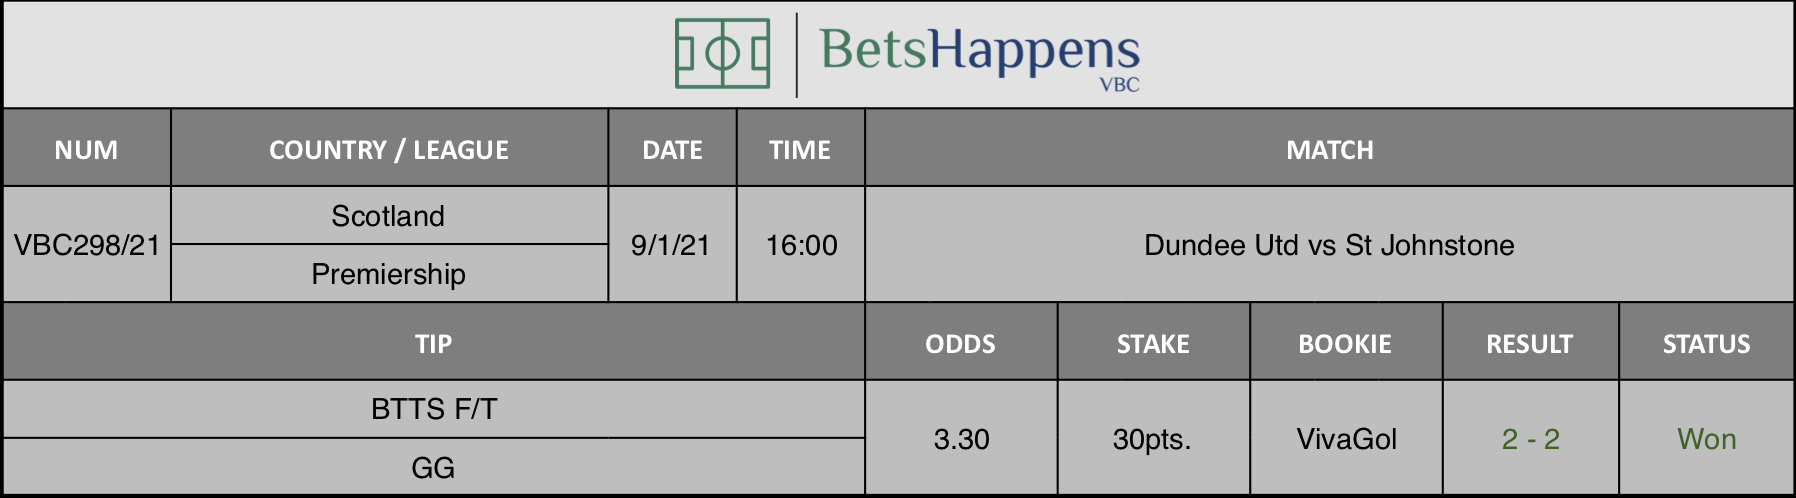 Results of our tip for the Dundee Utd vs St Johnstone  match where BTTS F/T  GG is recommended.